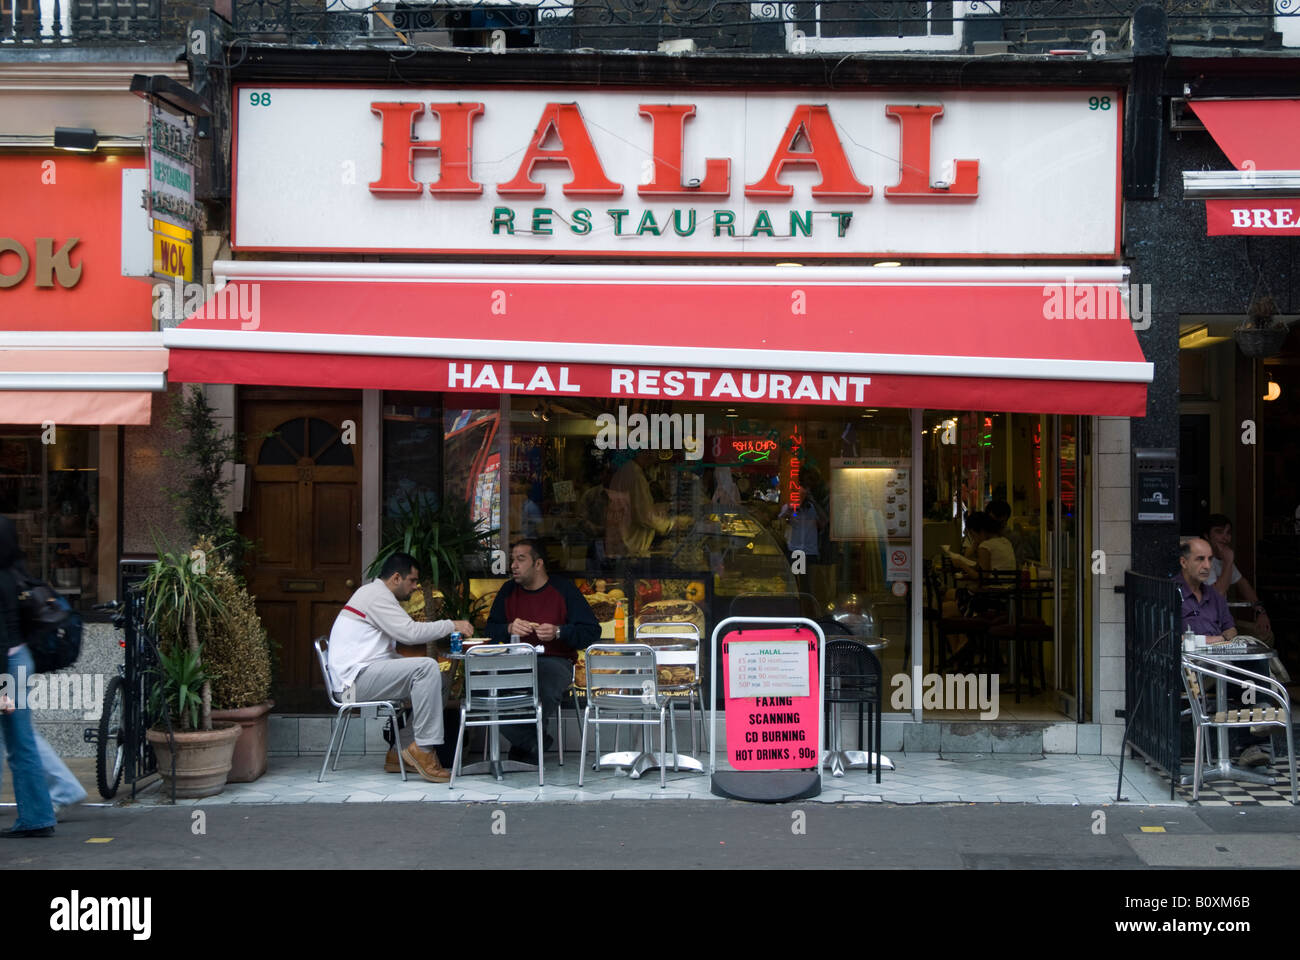 halal restaurant in queensway in bayswater london england uk stock photo 17796979 alamy. Black Bedroom Furniture Sets. Home Design Ideas